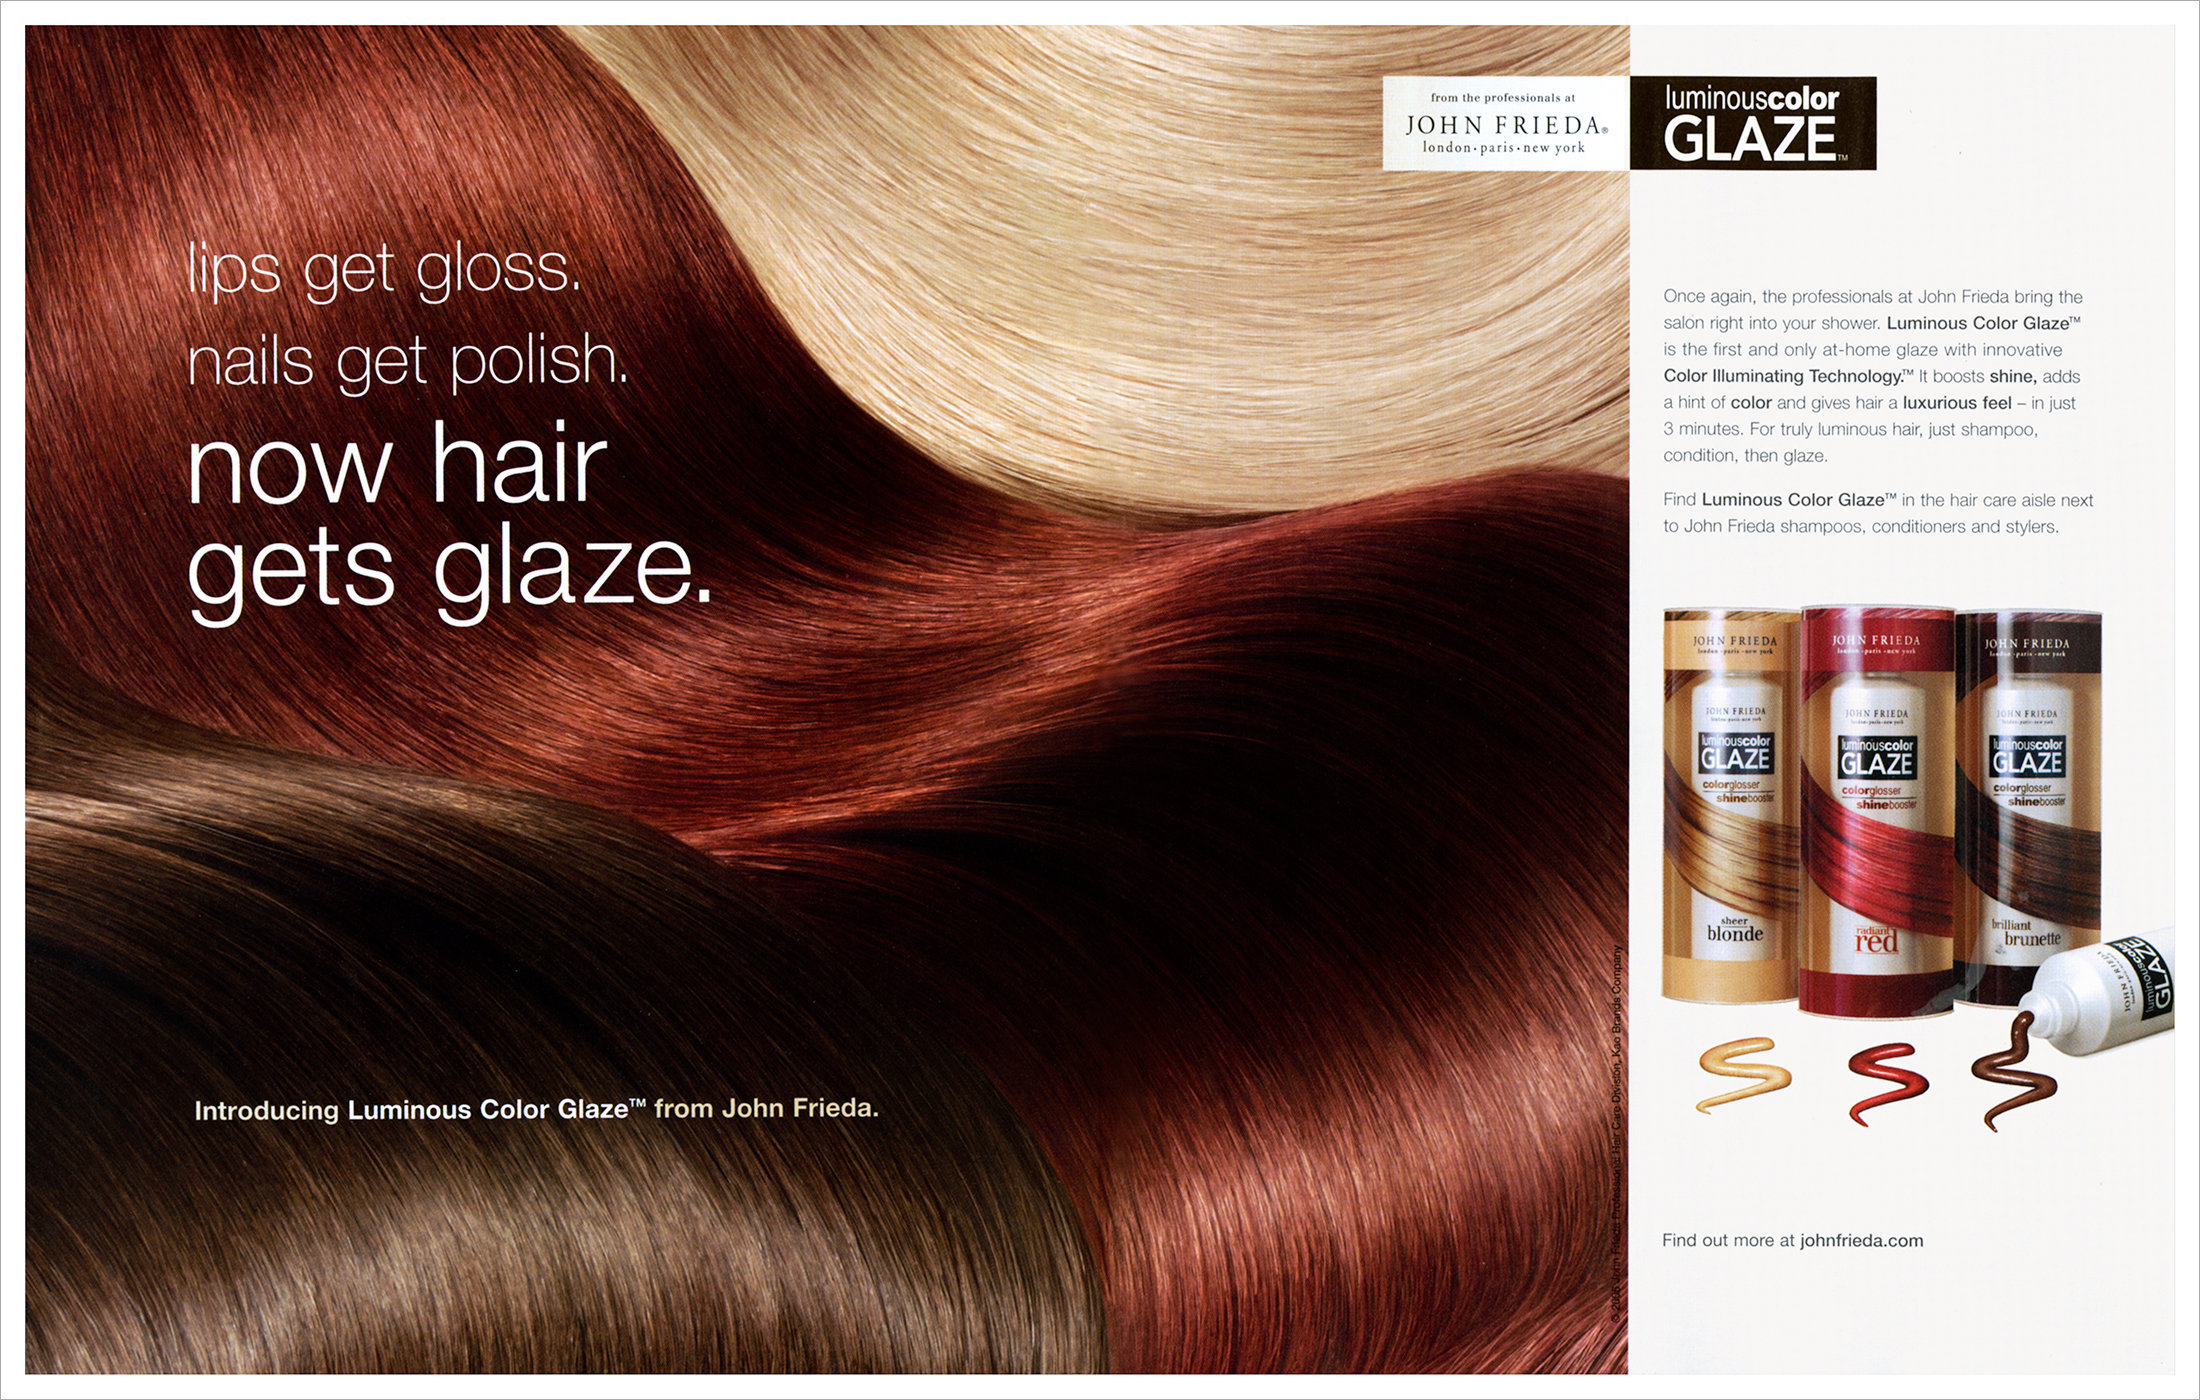 047_JohnFrieda_ad_22X14_lr.jpg